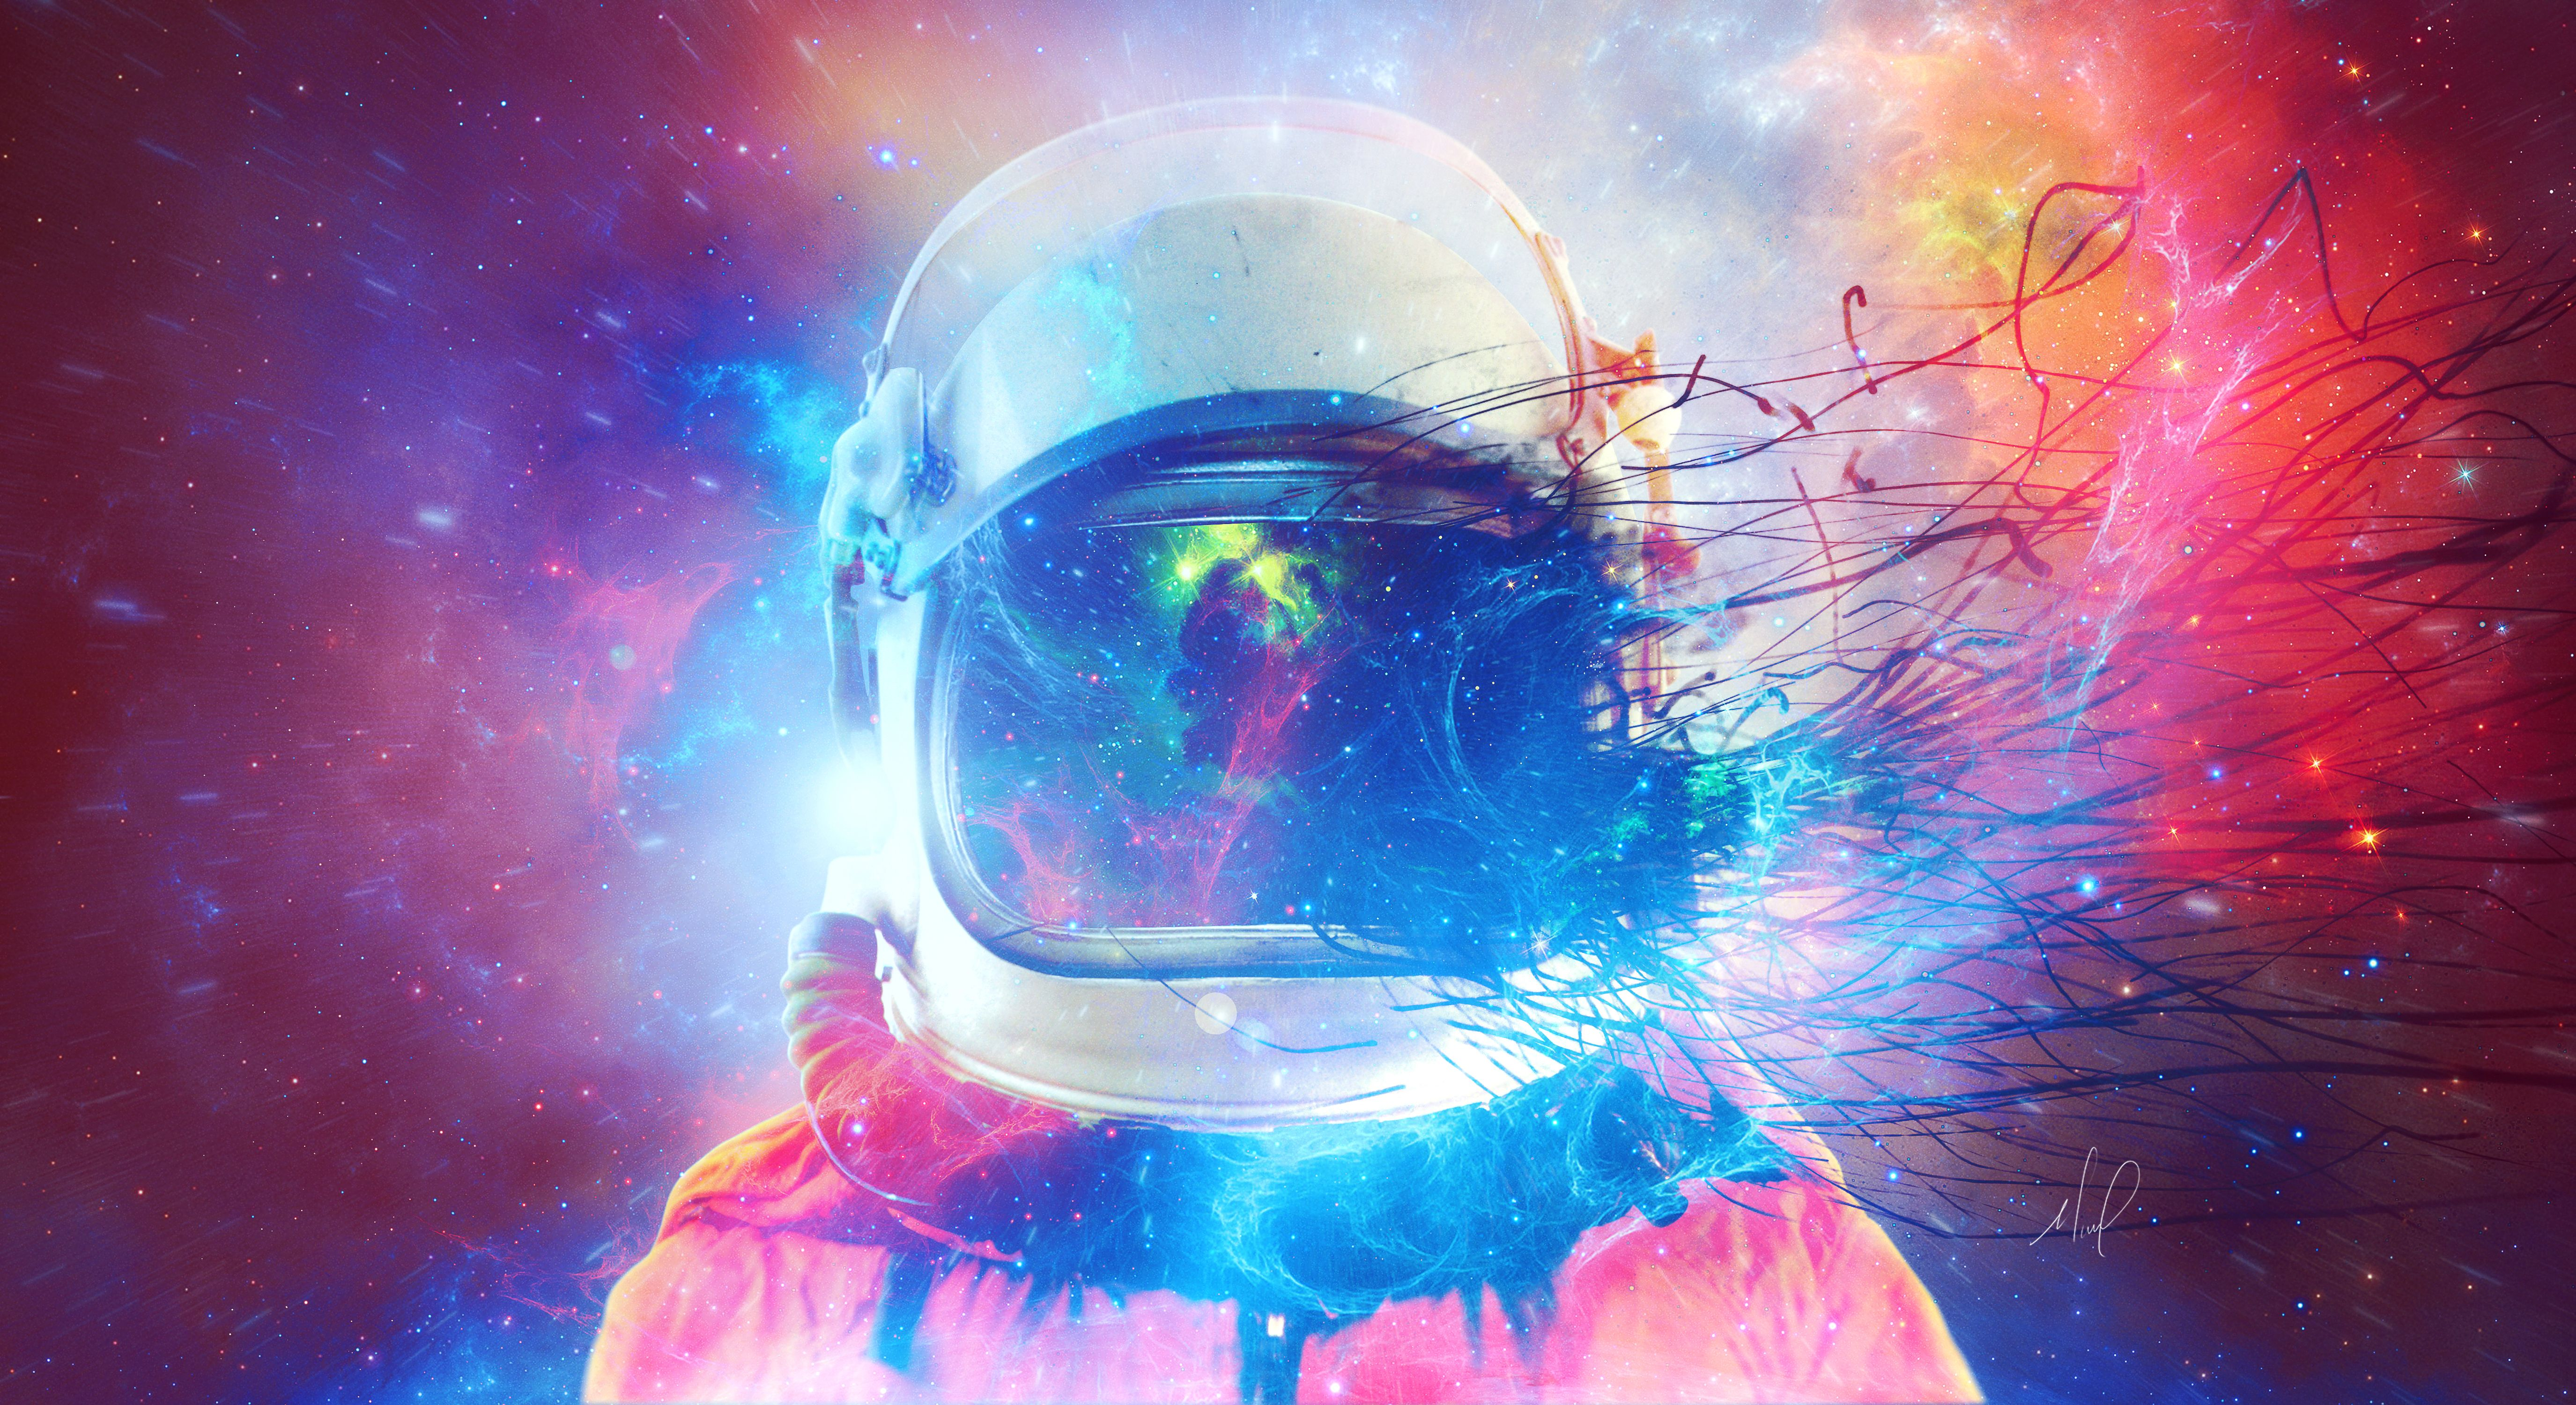 Astronaut Galaxy Wallpapers Top Free Astronaut Galaxy